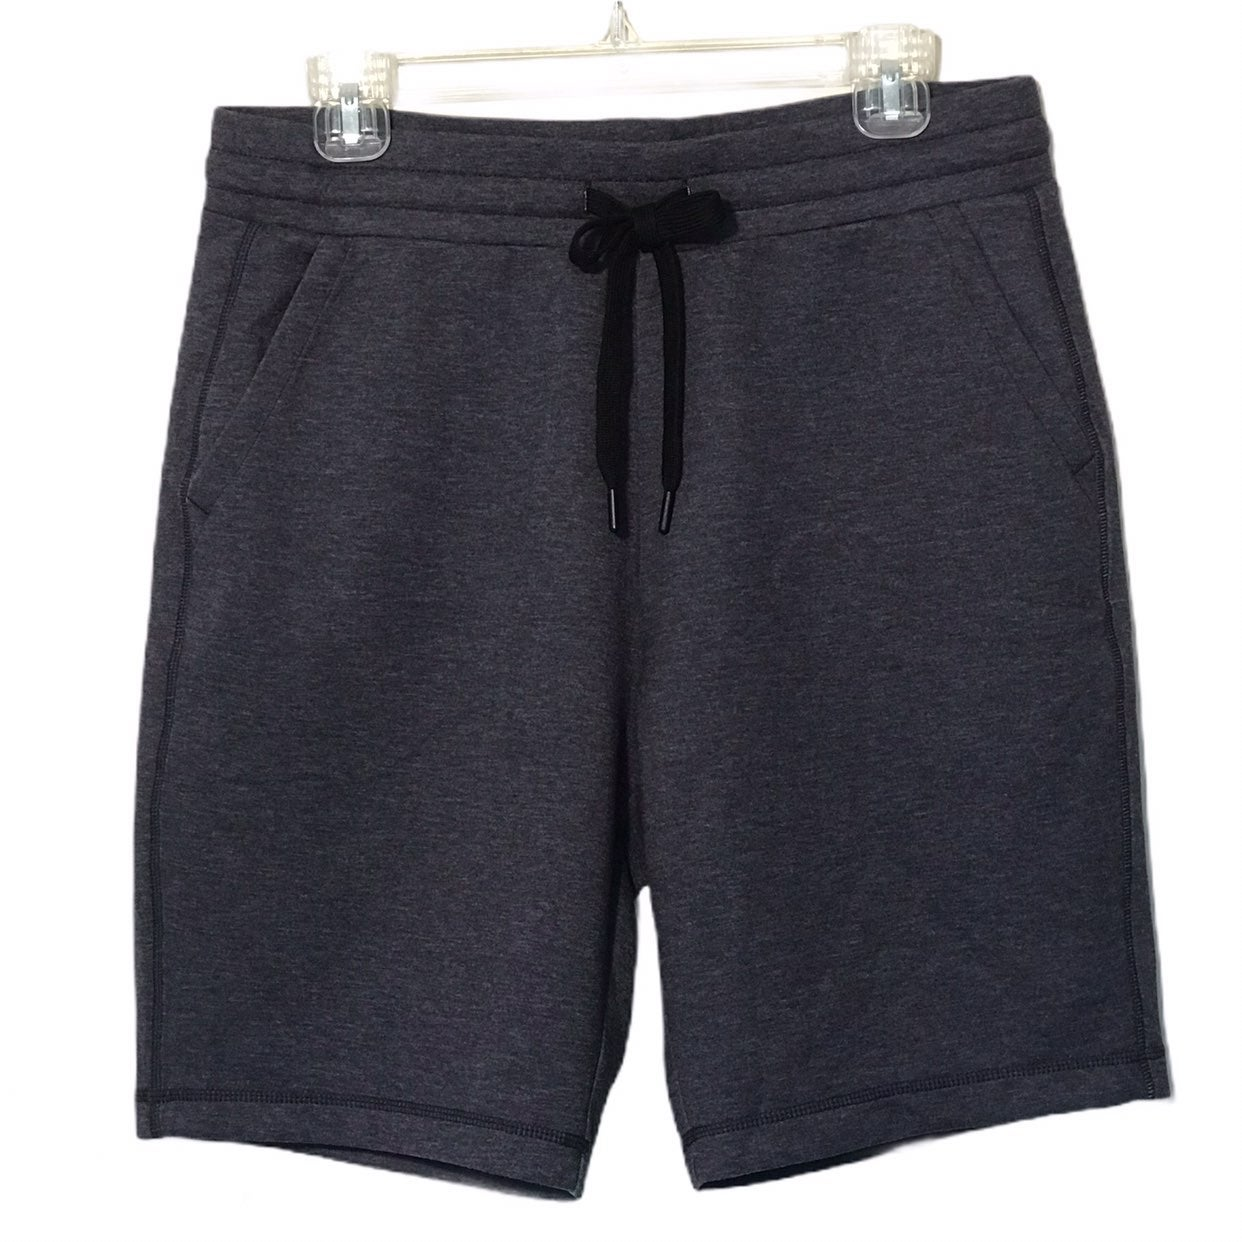 32 Degrees Heather Stormy Night Shorts